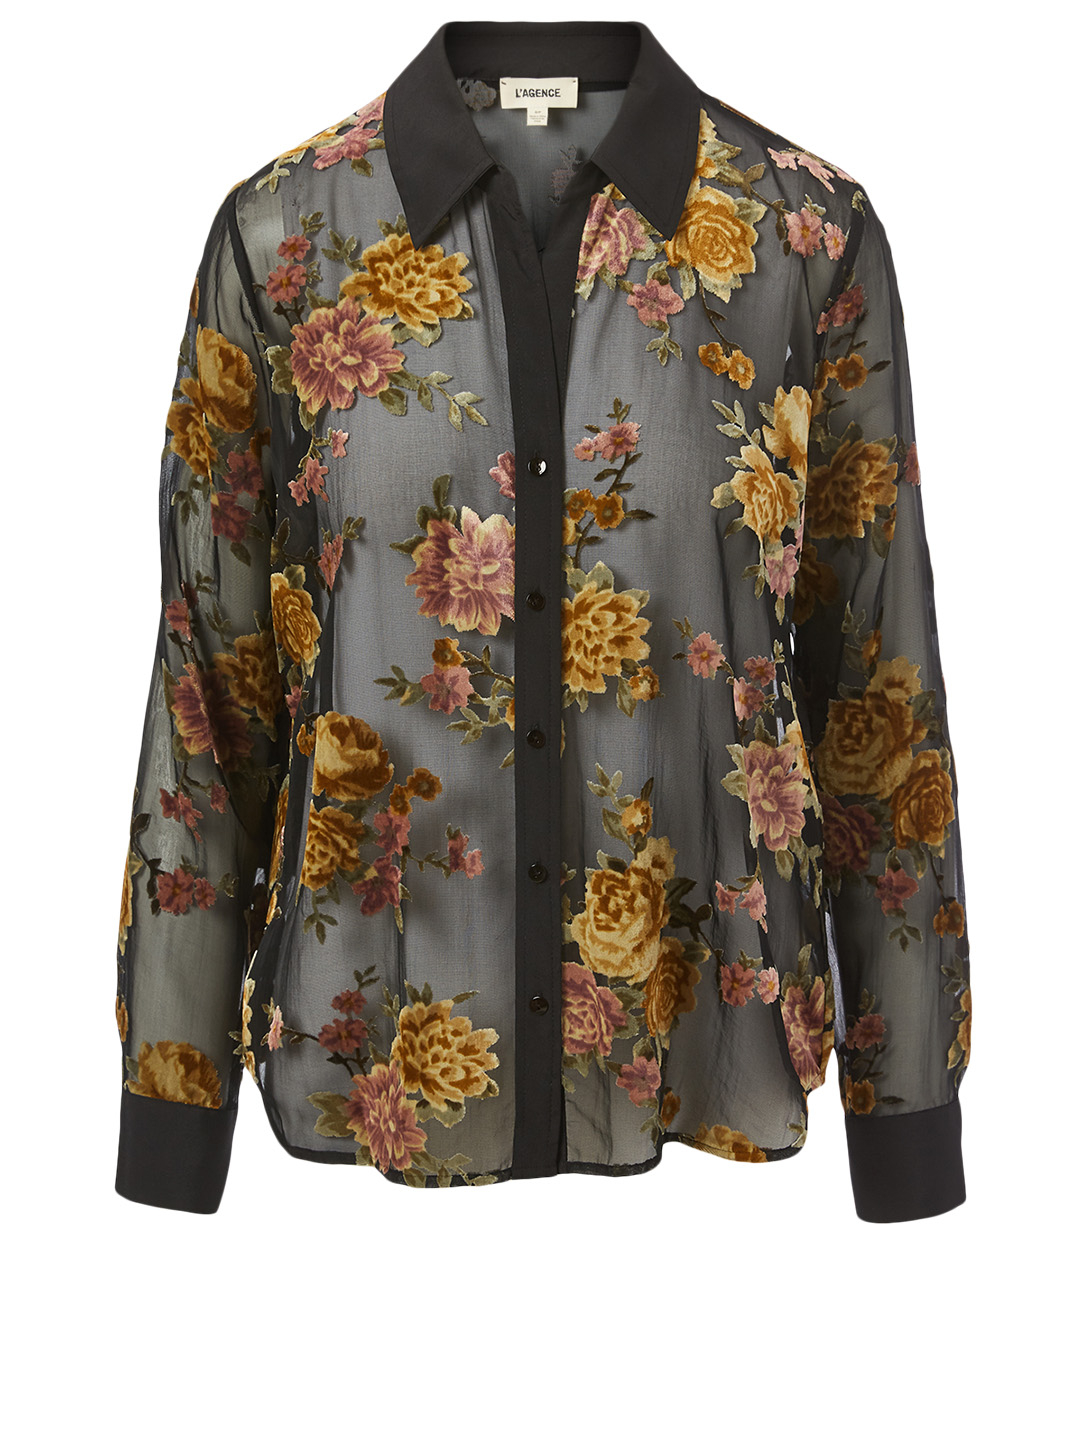 L'AGENCE Hailie Blouse In Floral Print Women's Multi